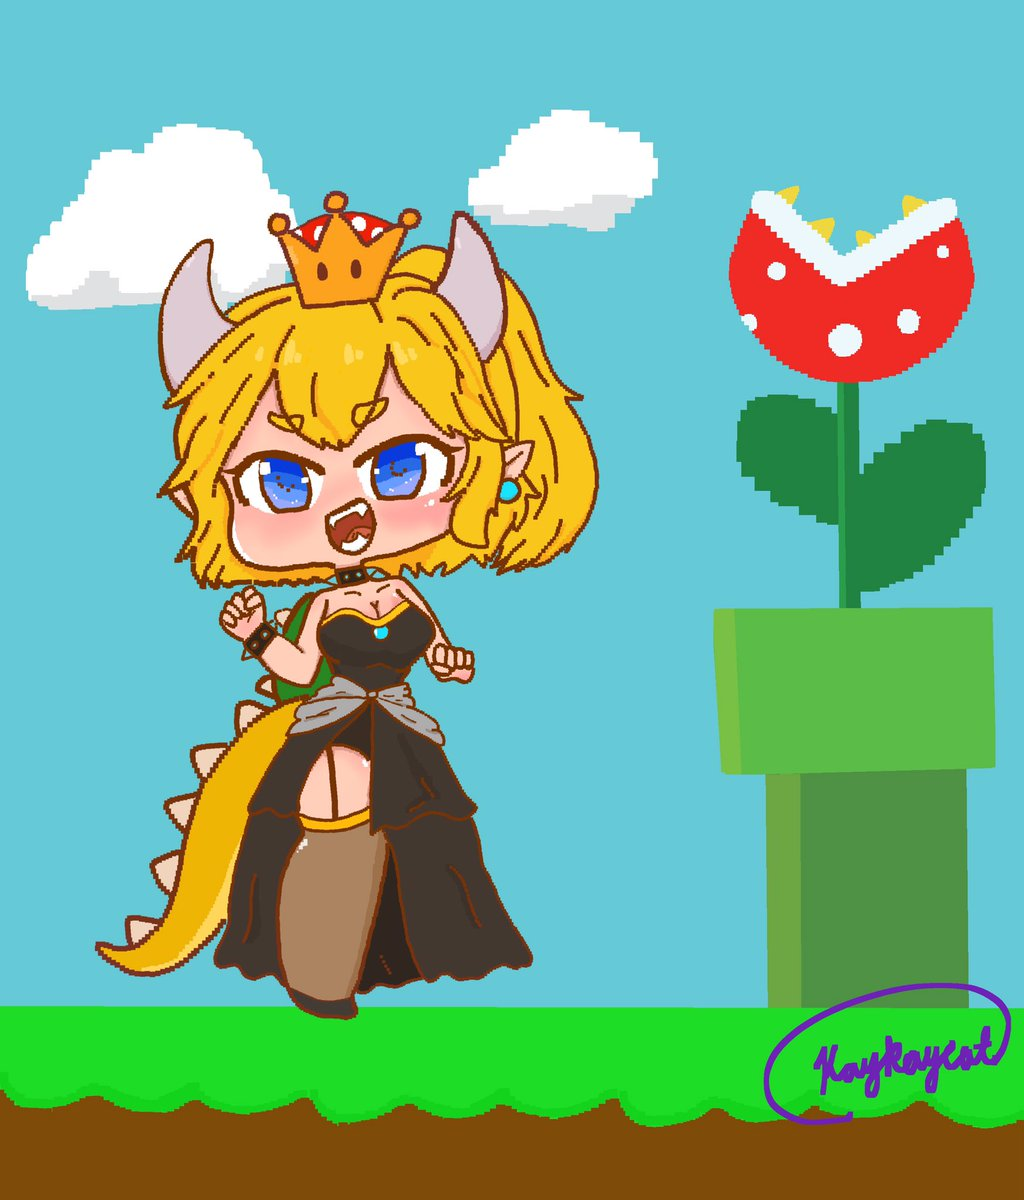 My Bowsette drawing from last year #bowsette #fanart